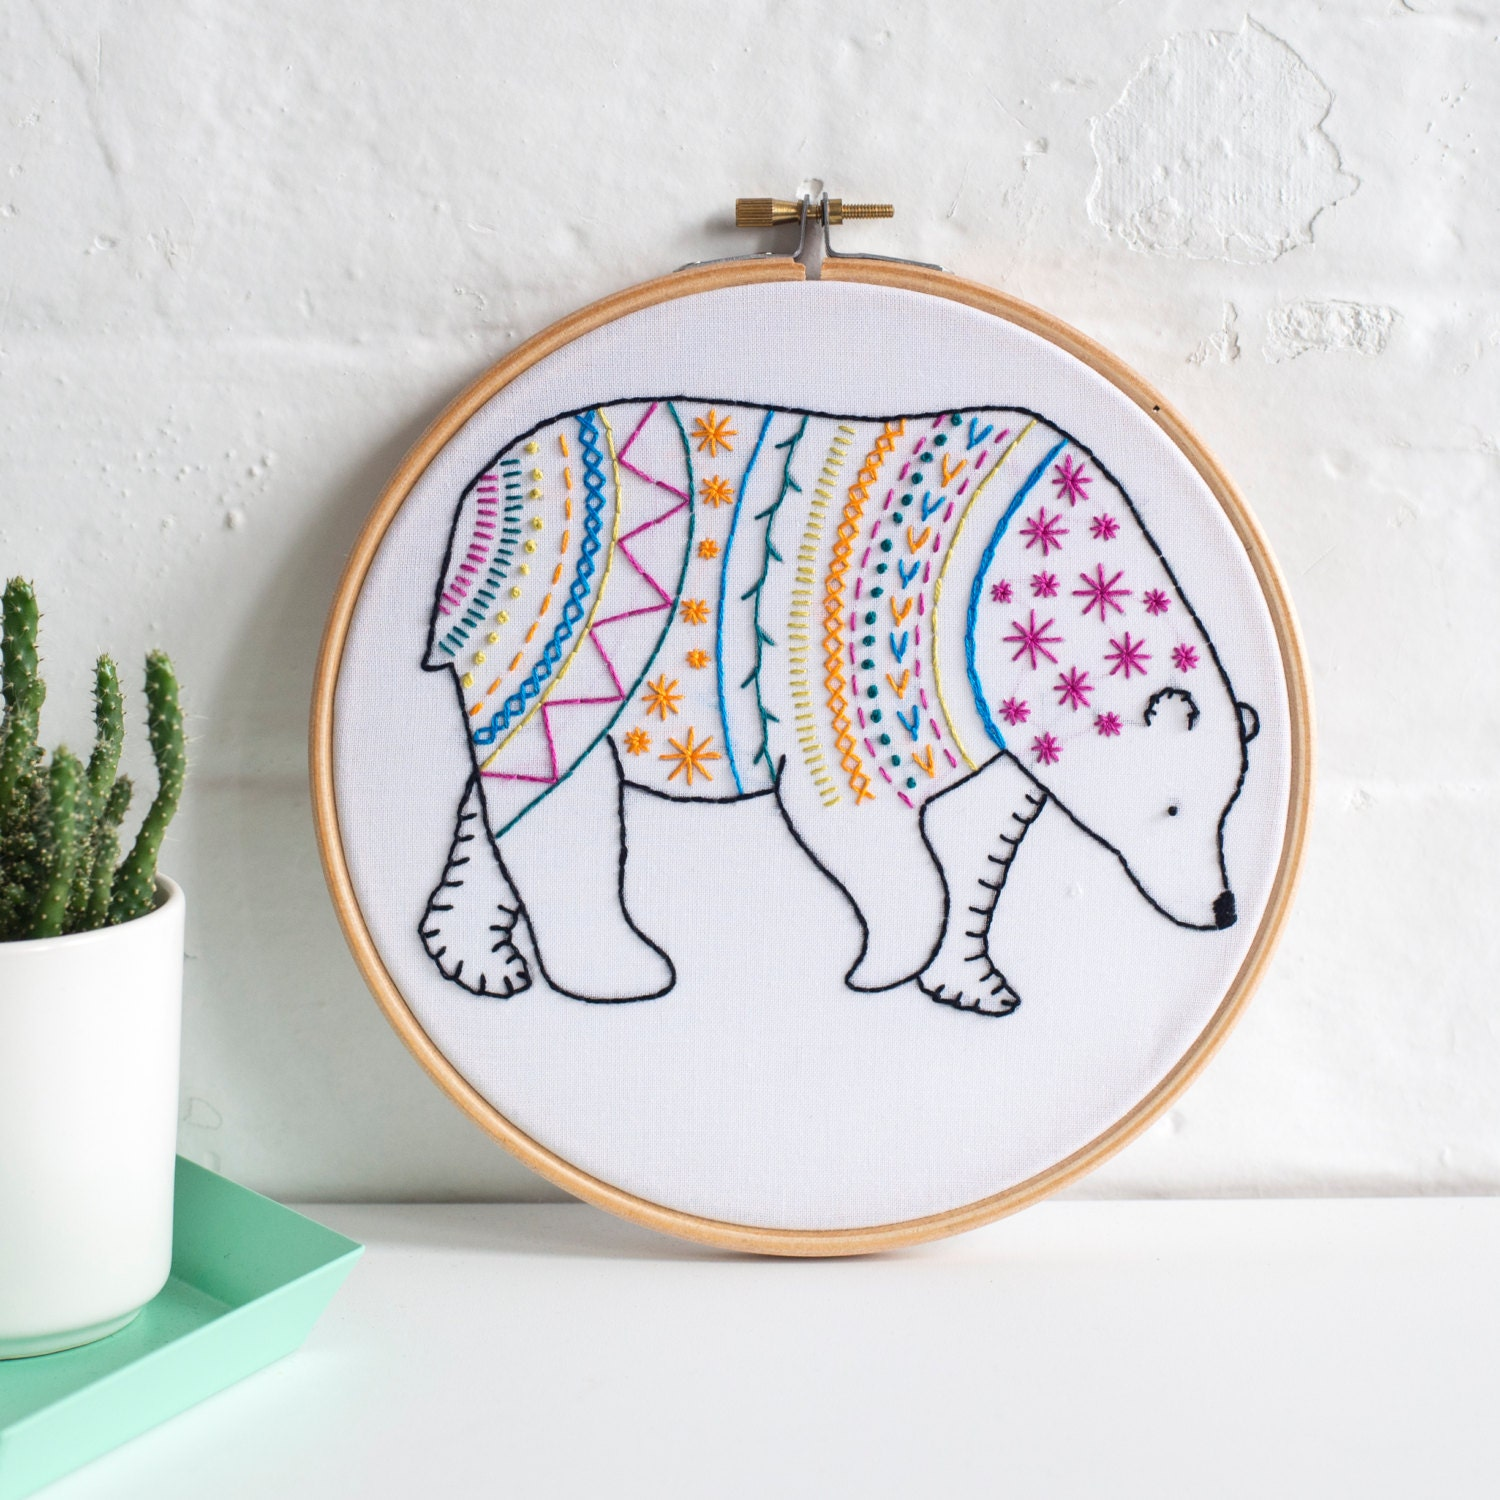 Bear contemporary embroidery kit hoop art